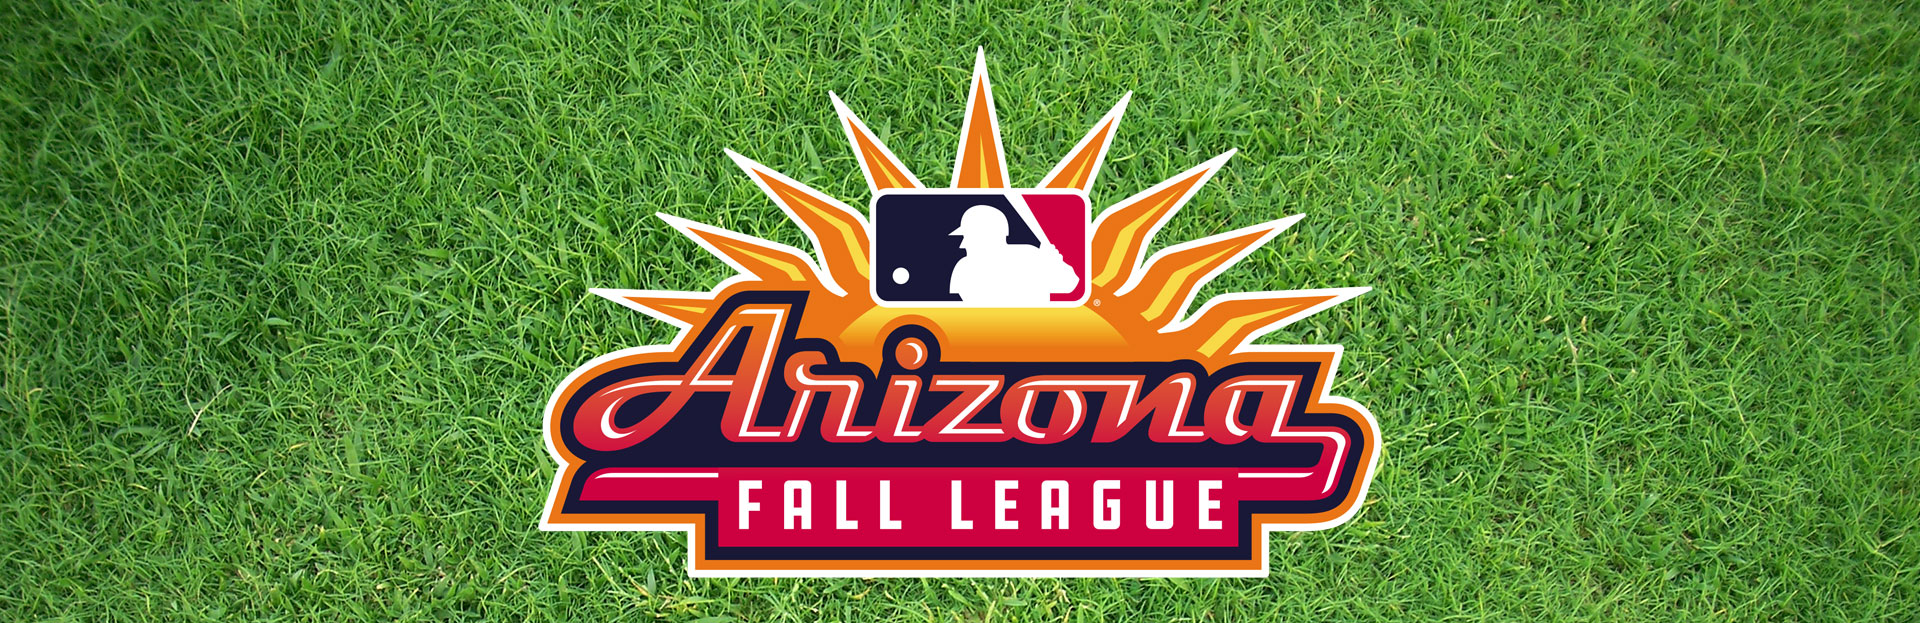 Arizona Fall League